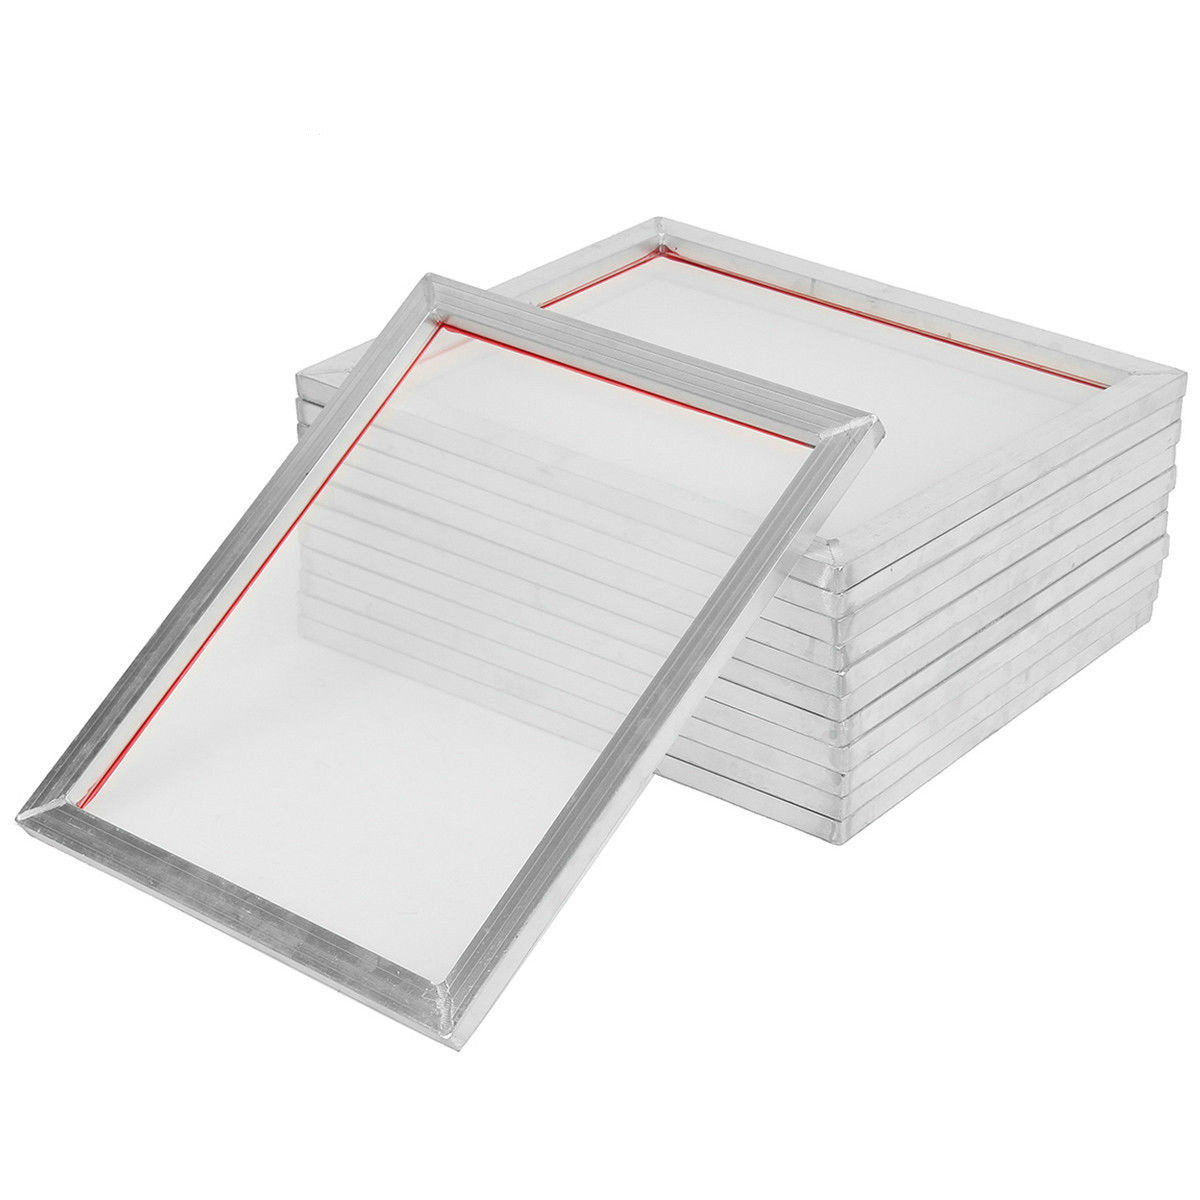 5Pcs A5 Screen Printing Aluminium Frame Stretched 32*22cm With 32T-120T Silk Print Polyester Mesh For Printed Circuit Boards